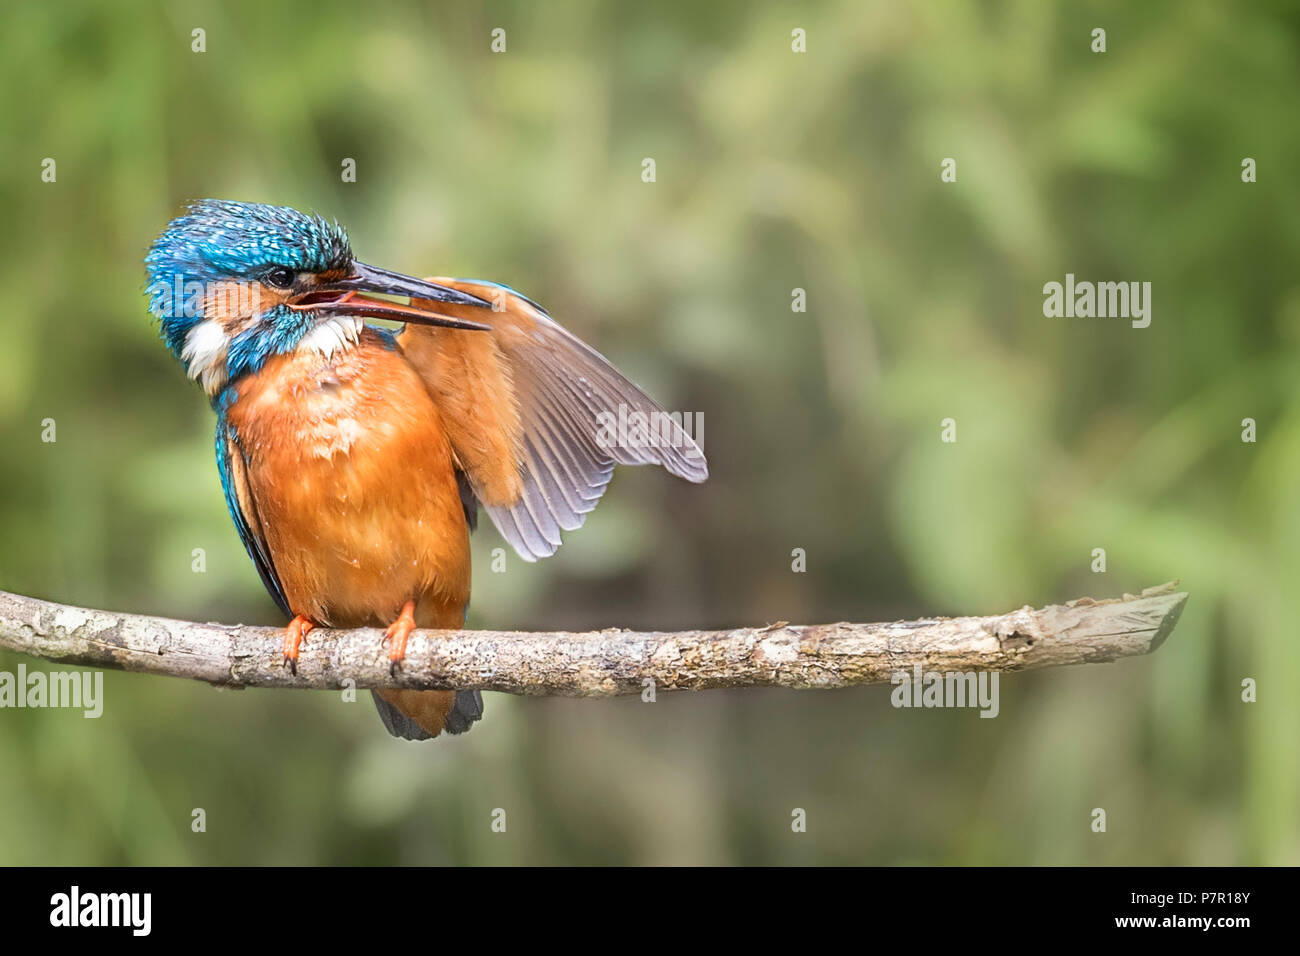 Common kingfisher preening wing feathers Stock Photo